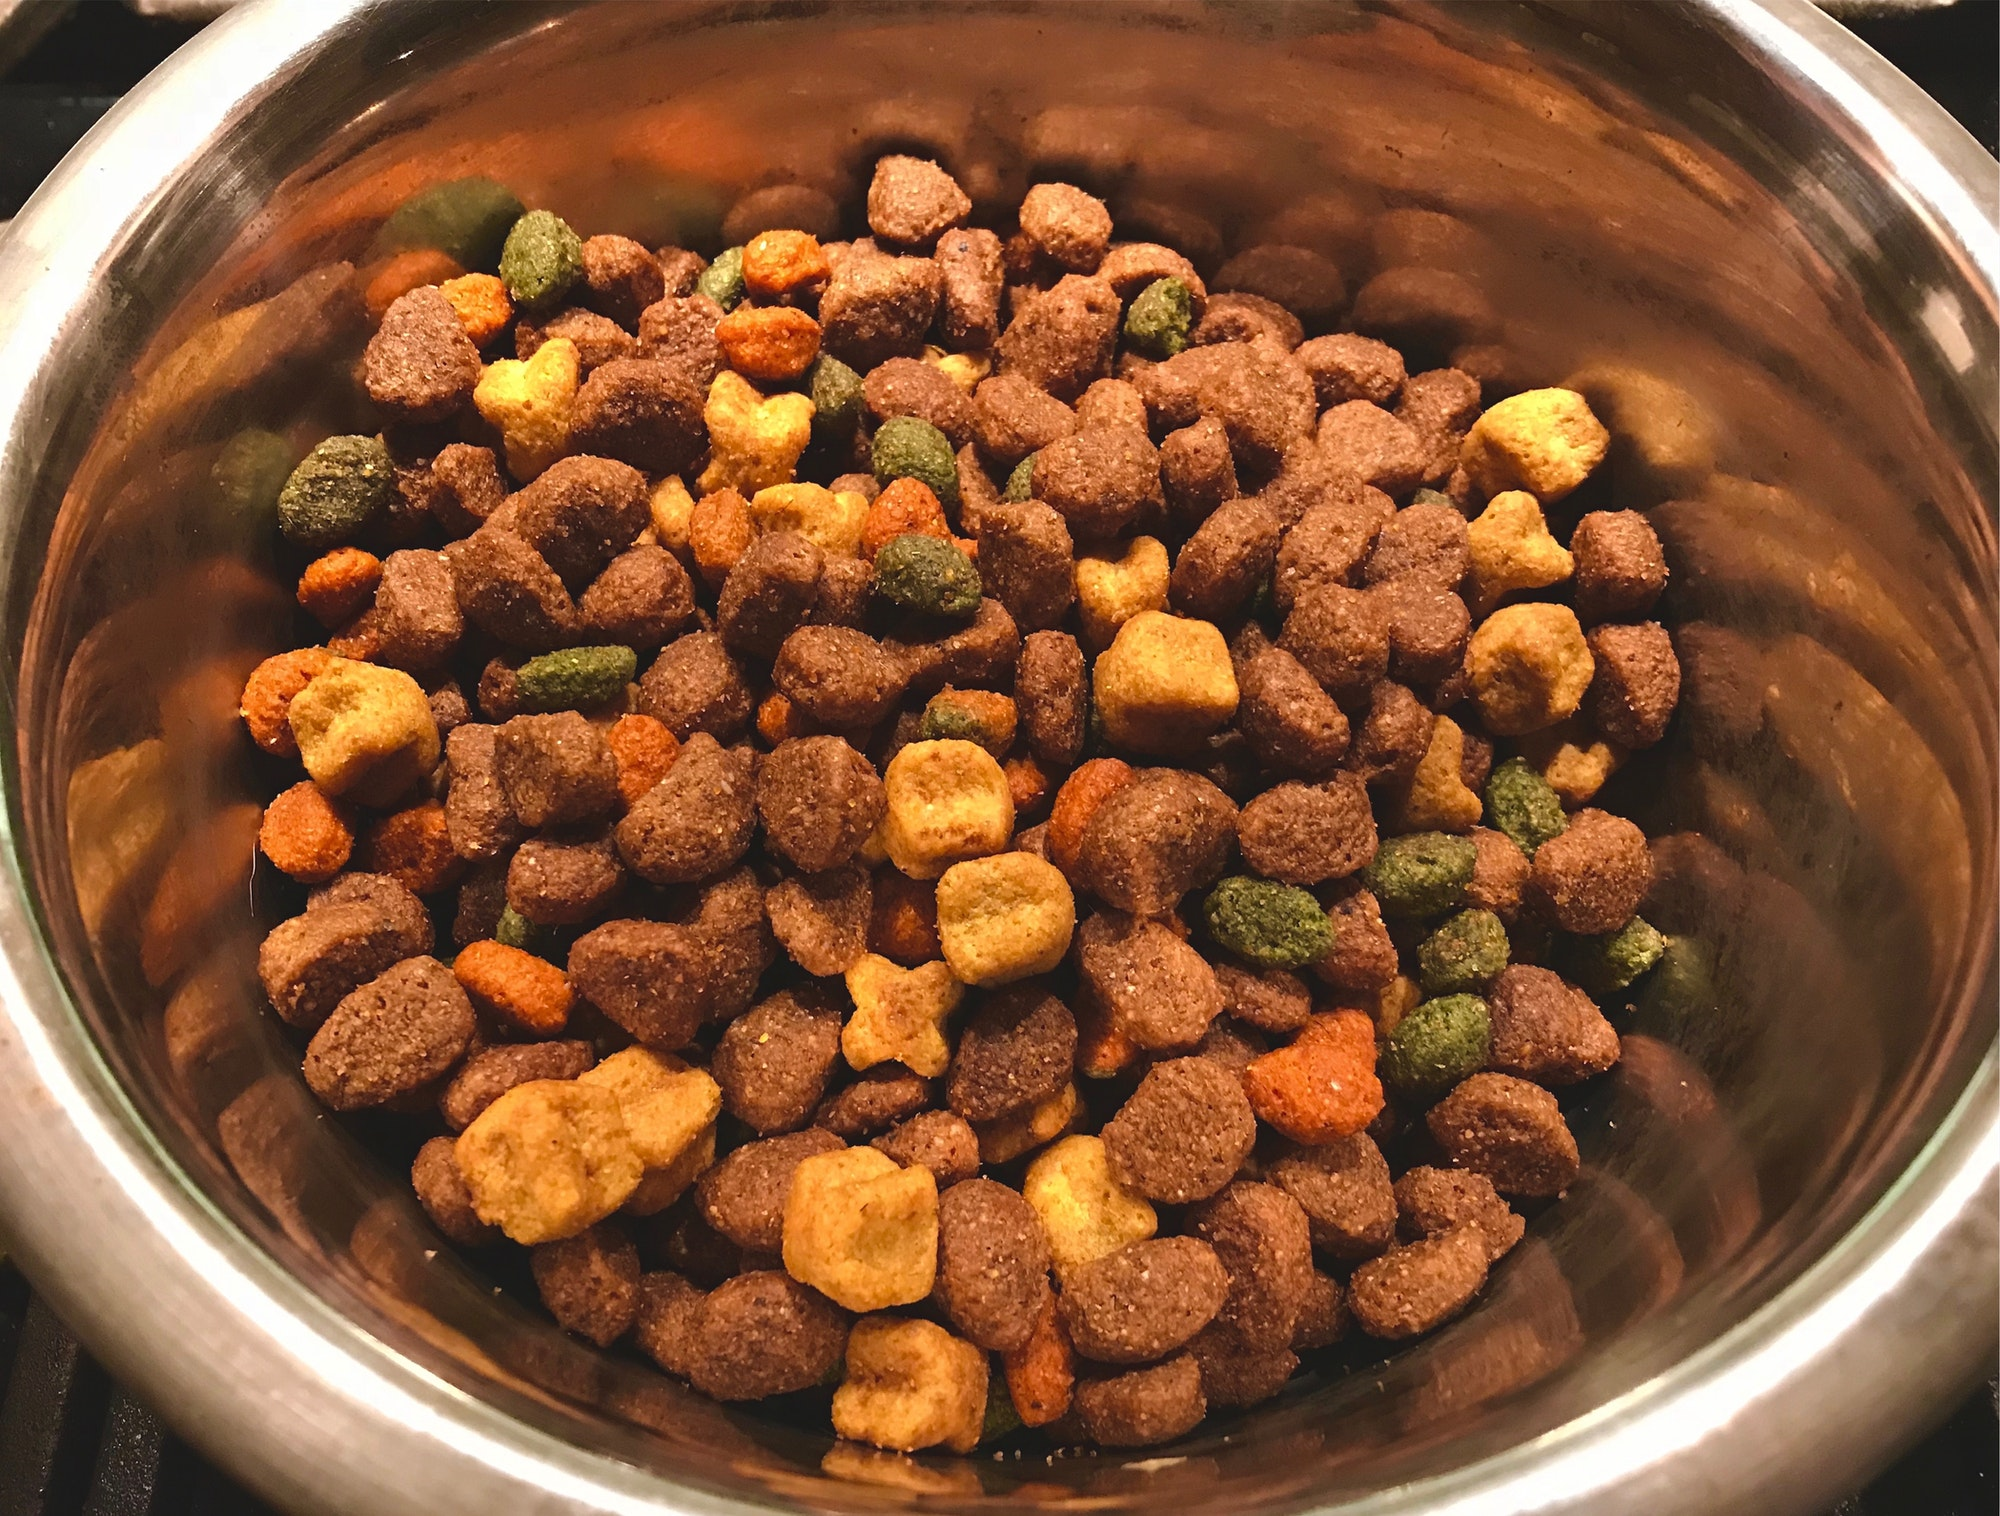 Dog food dry kibble in a stainless steel dog food bowl